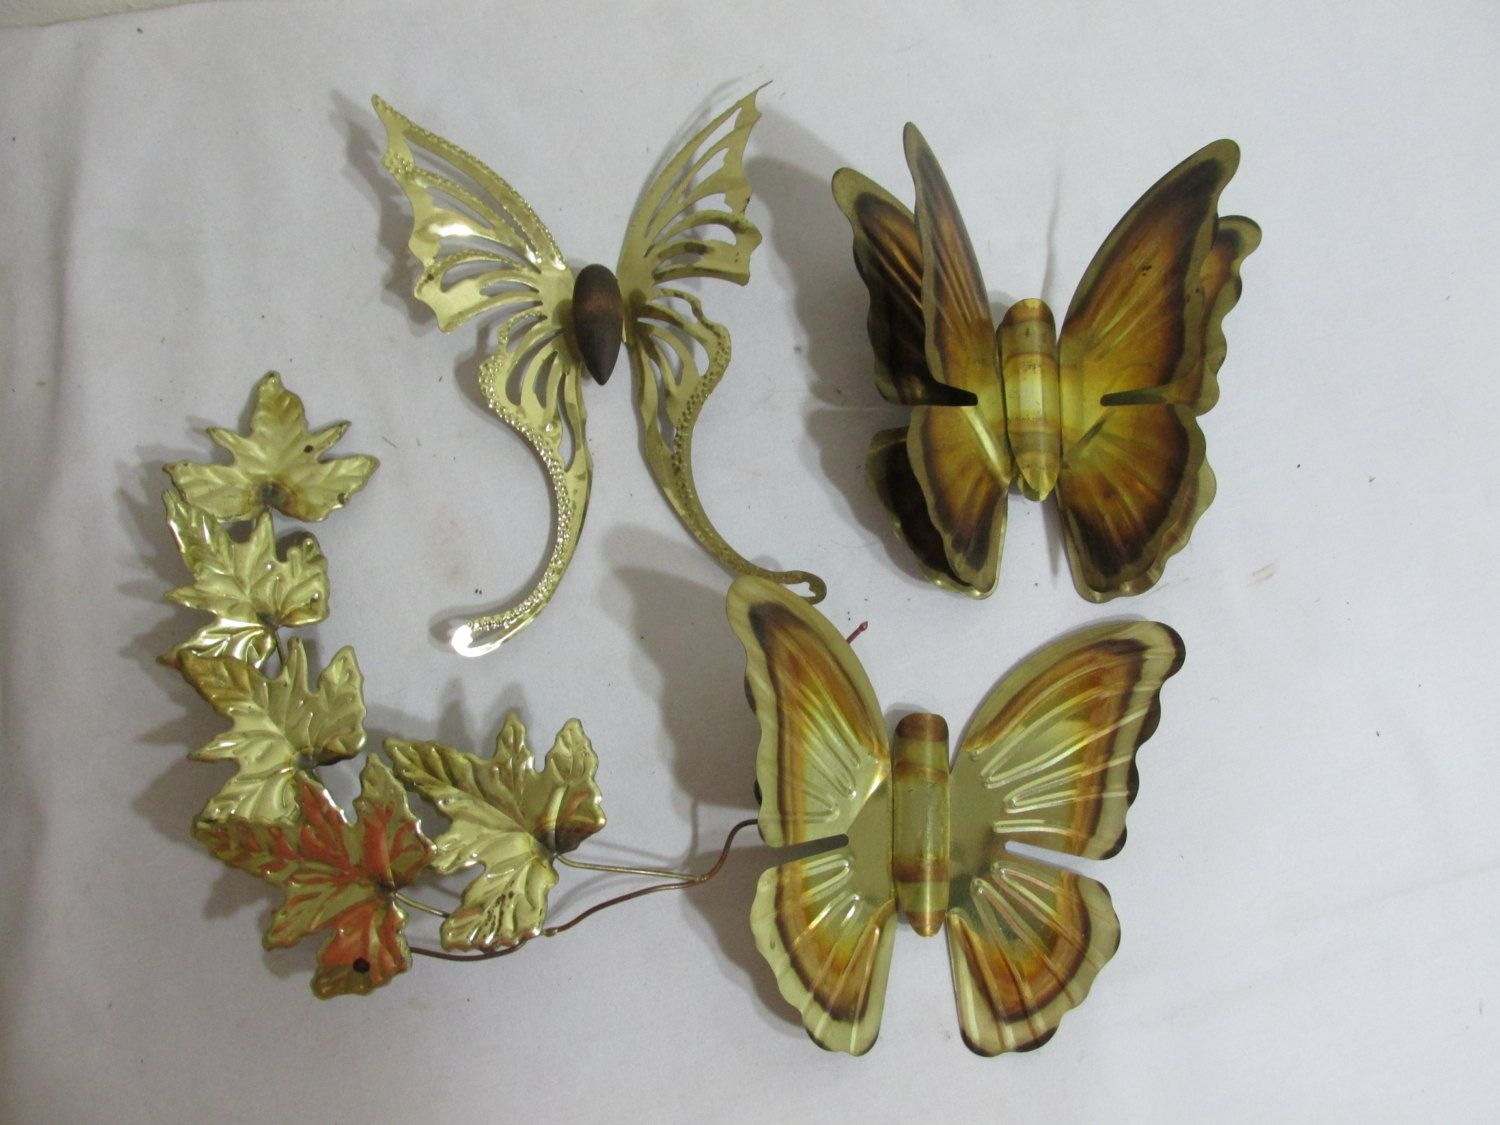 Brass Butterfly Variety Vintage Home Interior Wall Decor By